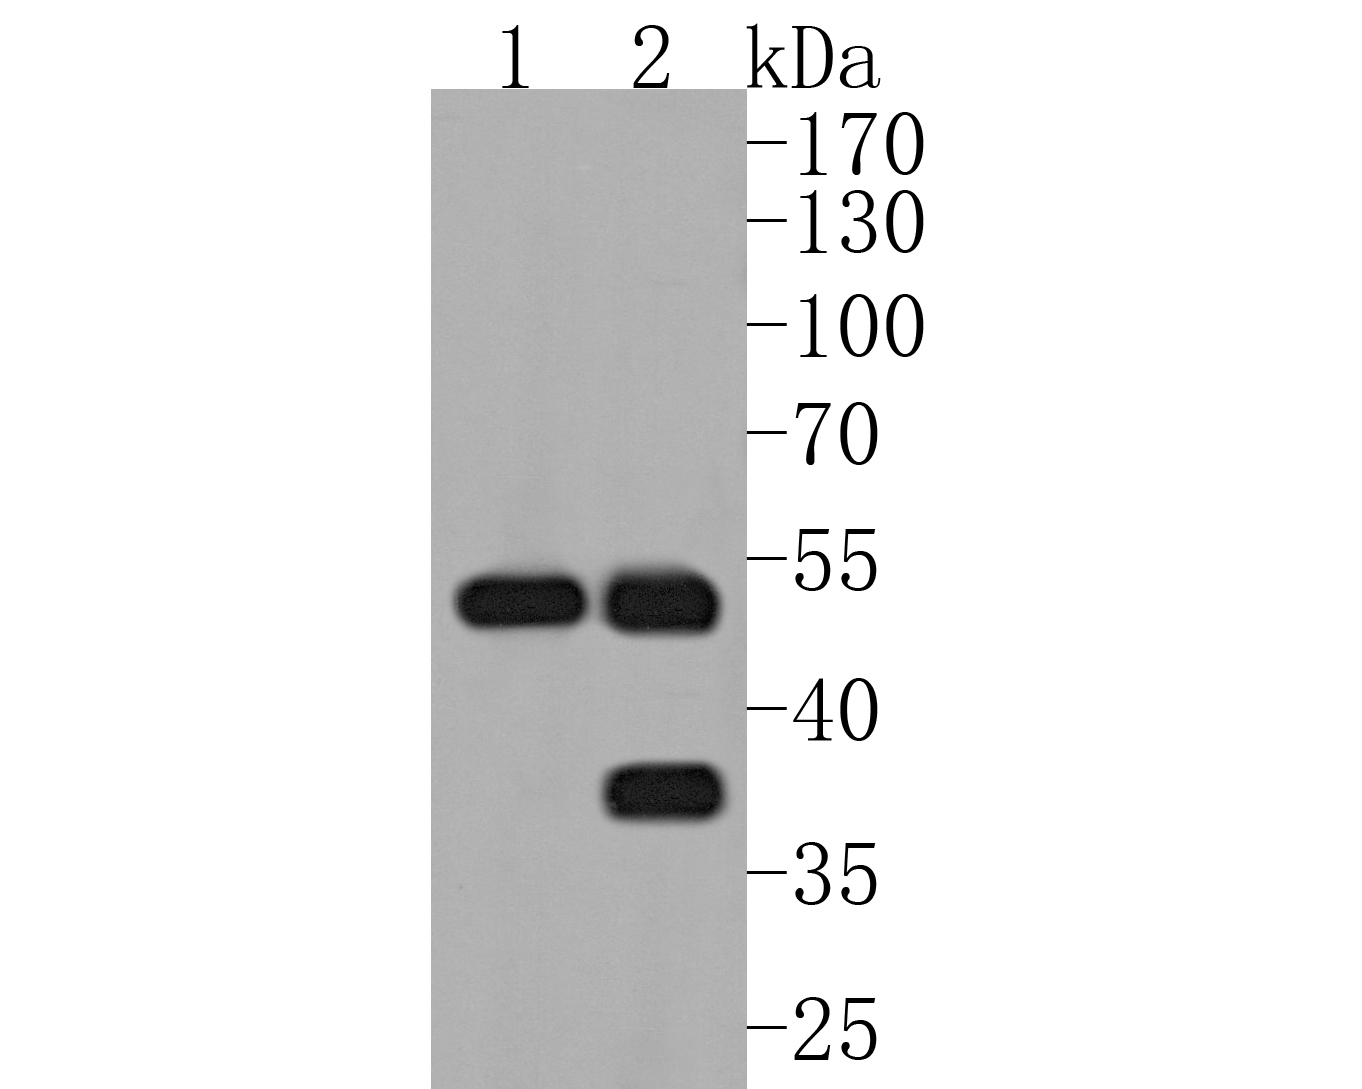 Western blot analysis of MMP3 on different lysates. Proteins were transferred to a PVDF membrane and blocked with 5% BSA in PBS for 1 hour at room temperature. The primary antibody (ET1705-98, 1/500) was used in 5% BSA at room temperature for 2 hours. Goat Anti-Rabbit IgG - HRP Secondary Antibody (HA1001) at 1:5,000 dilution was used for 1 hour at room temperature.<br /> Positive control: <br /> Lane 1: human liver tissue lysate<br /> Lane 2: rat liver tissue lysate